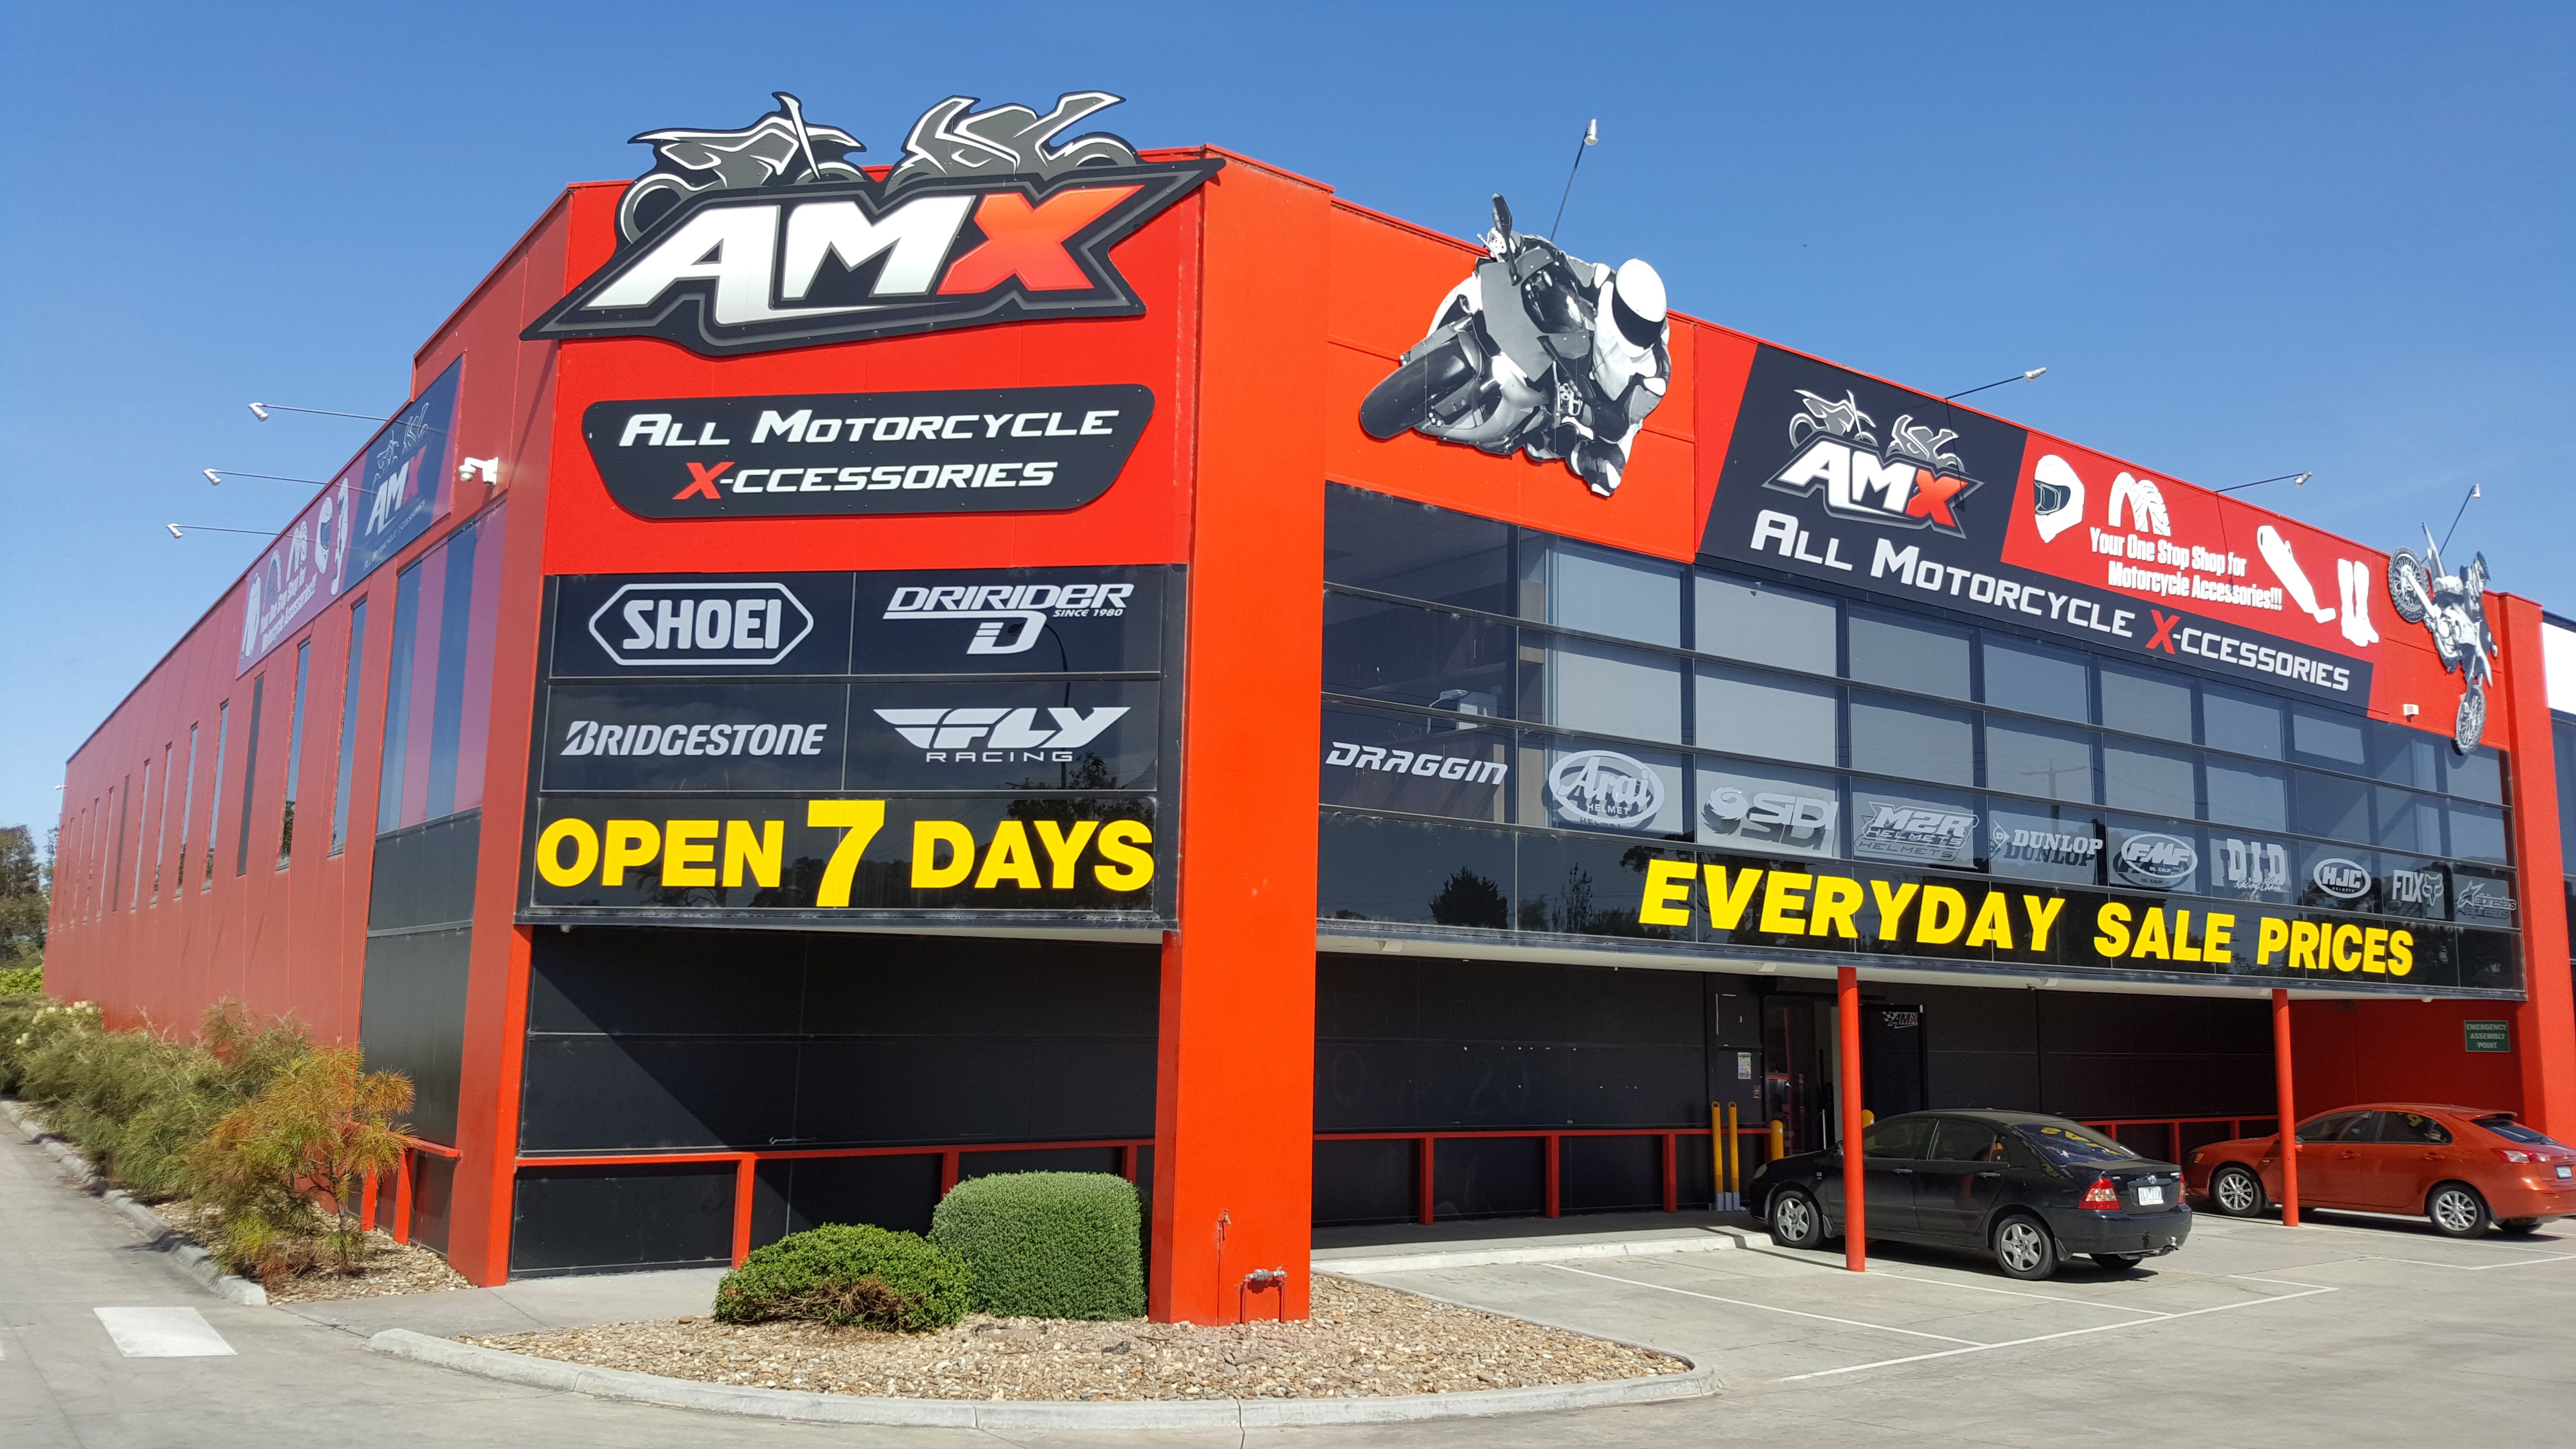 AMX superstore at 550 South Gippsland Hwy, Lynbrook in